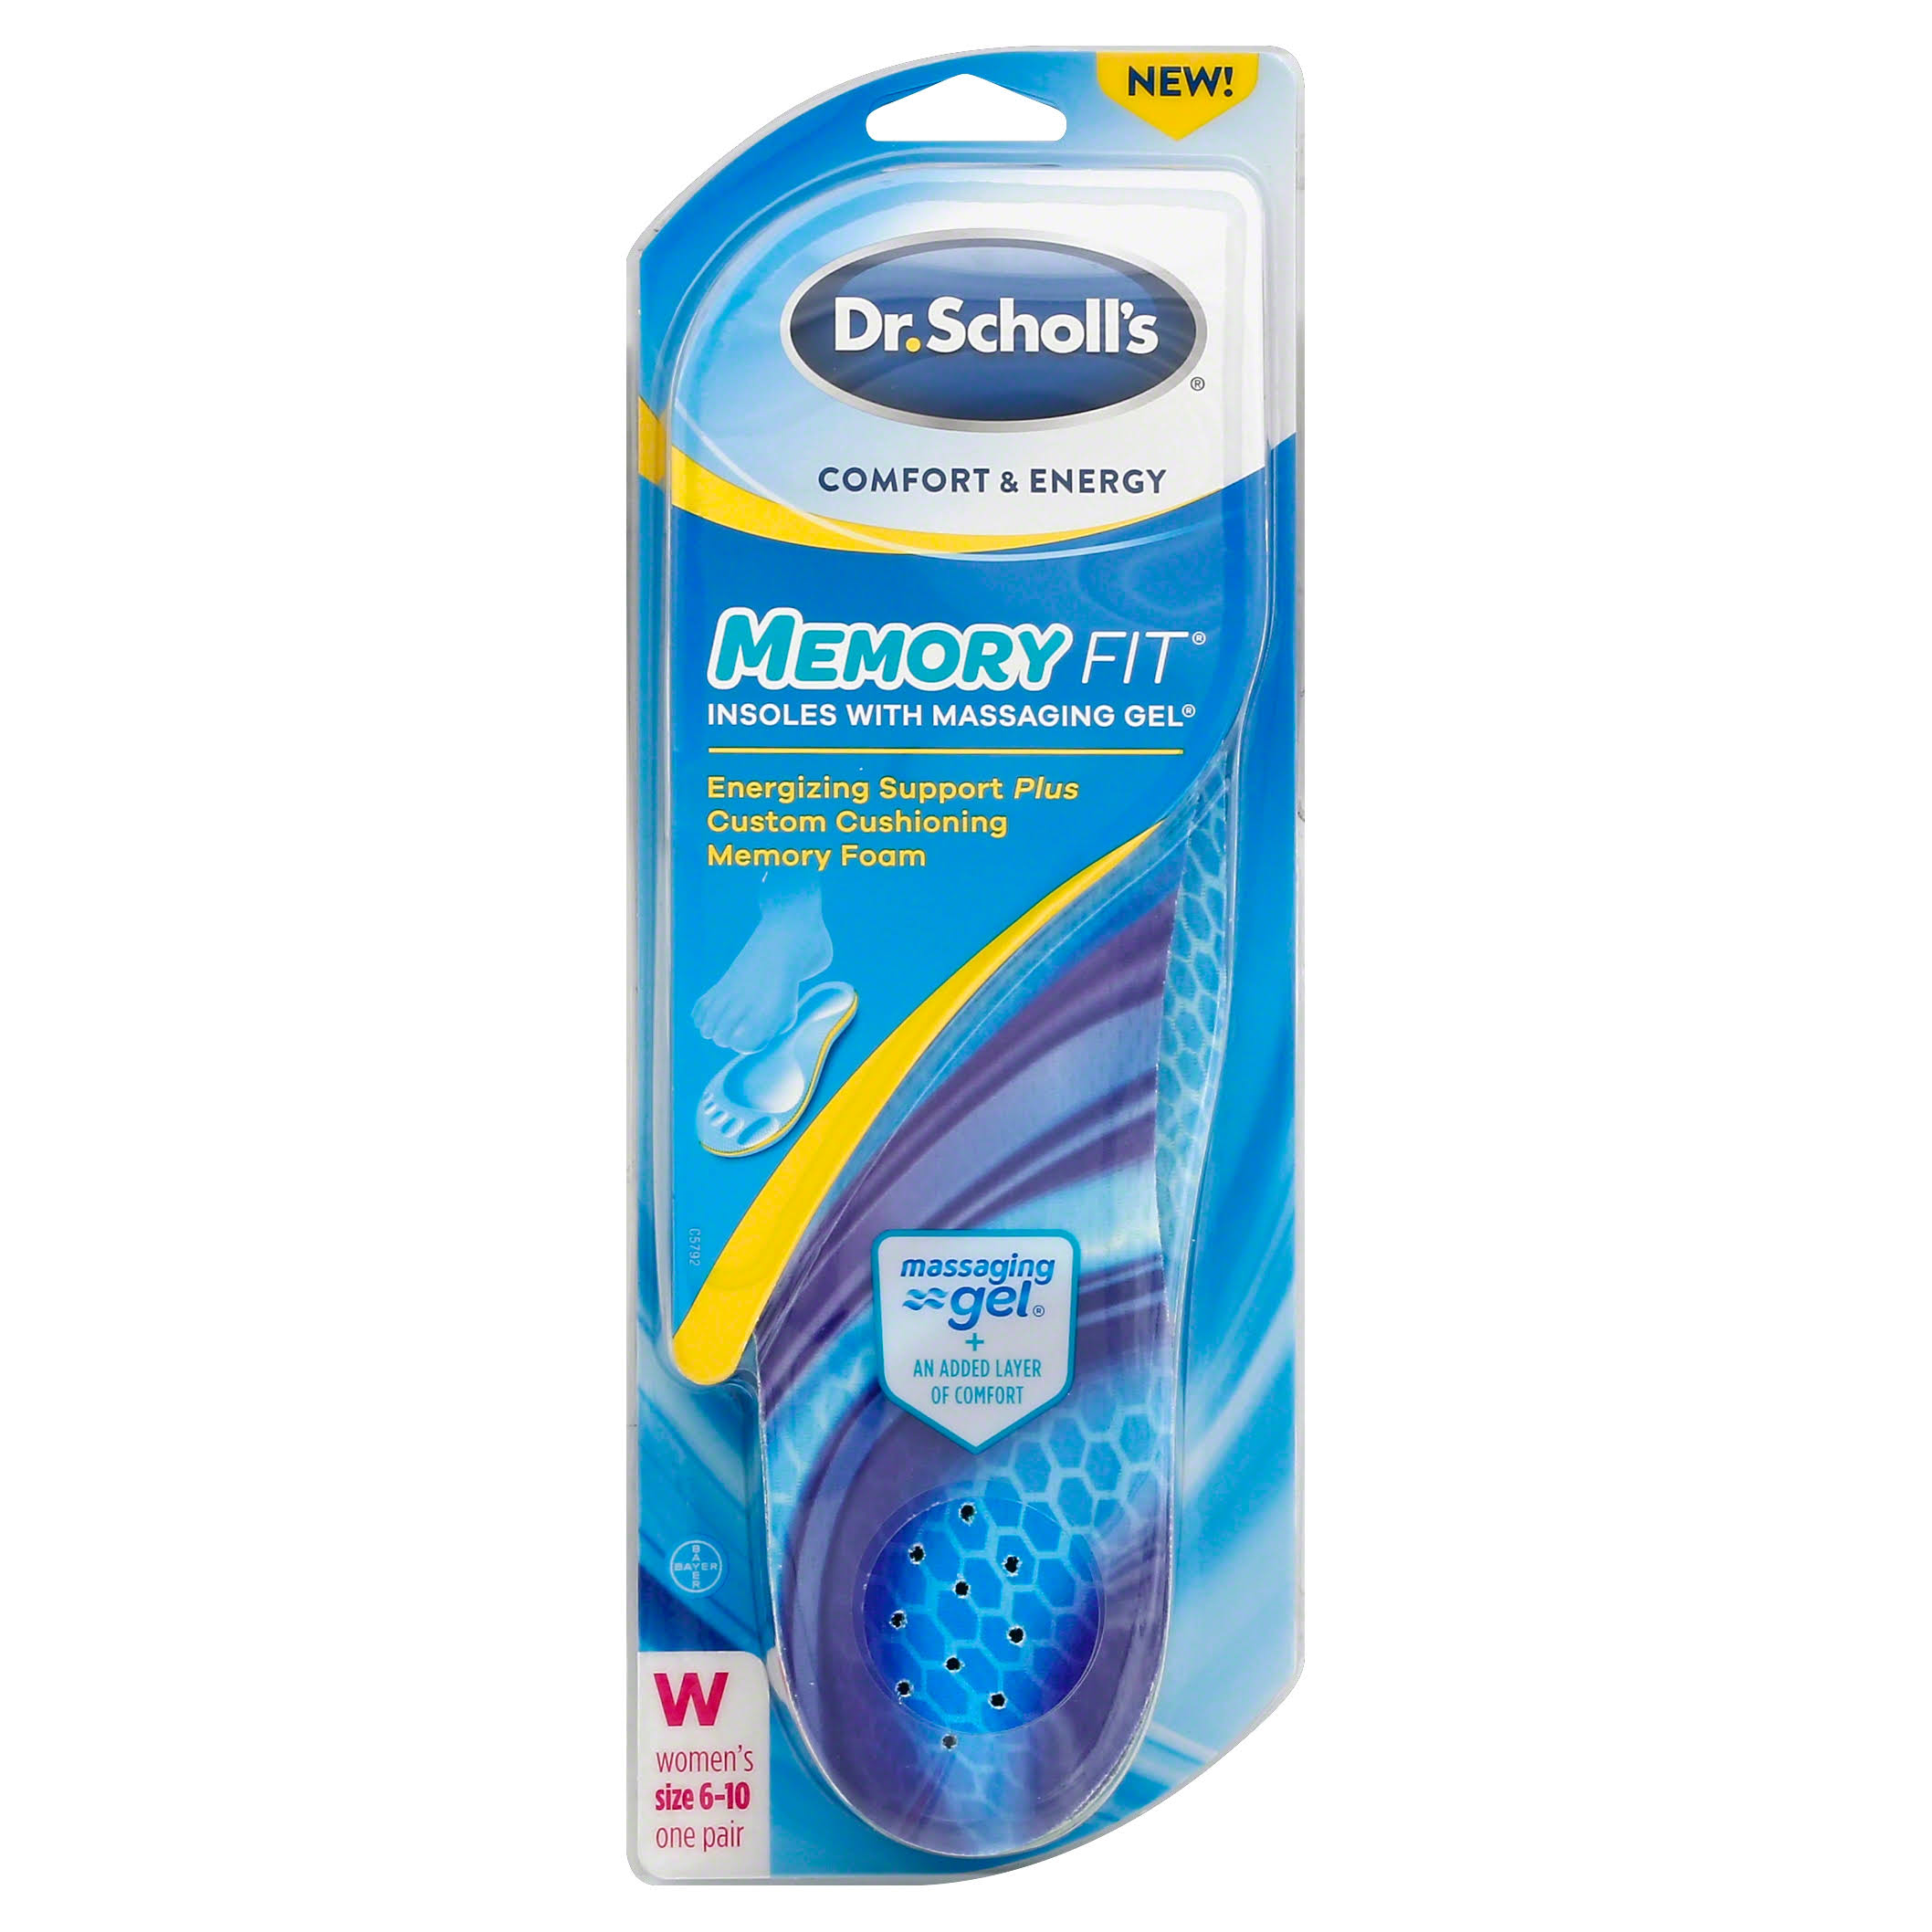 Dr. Scholl's Comfort & Energy Memory Fit Insoles - Women, Size 6-10